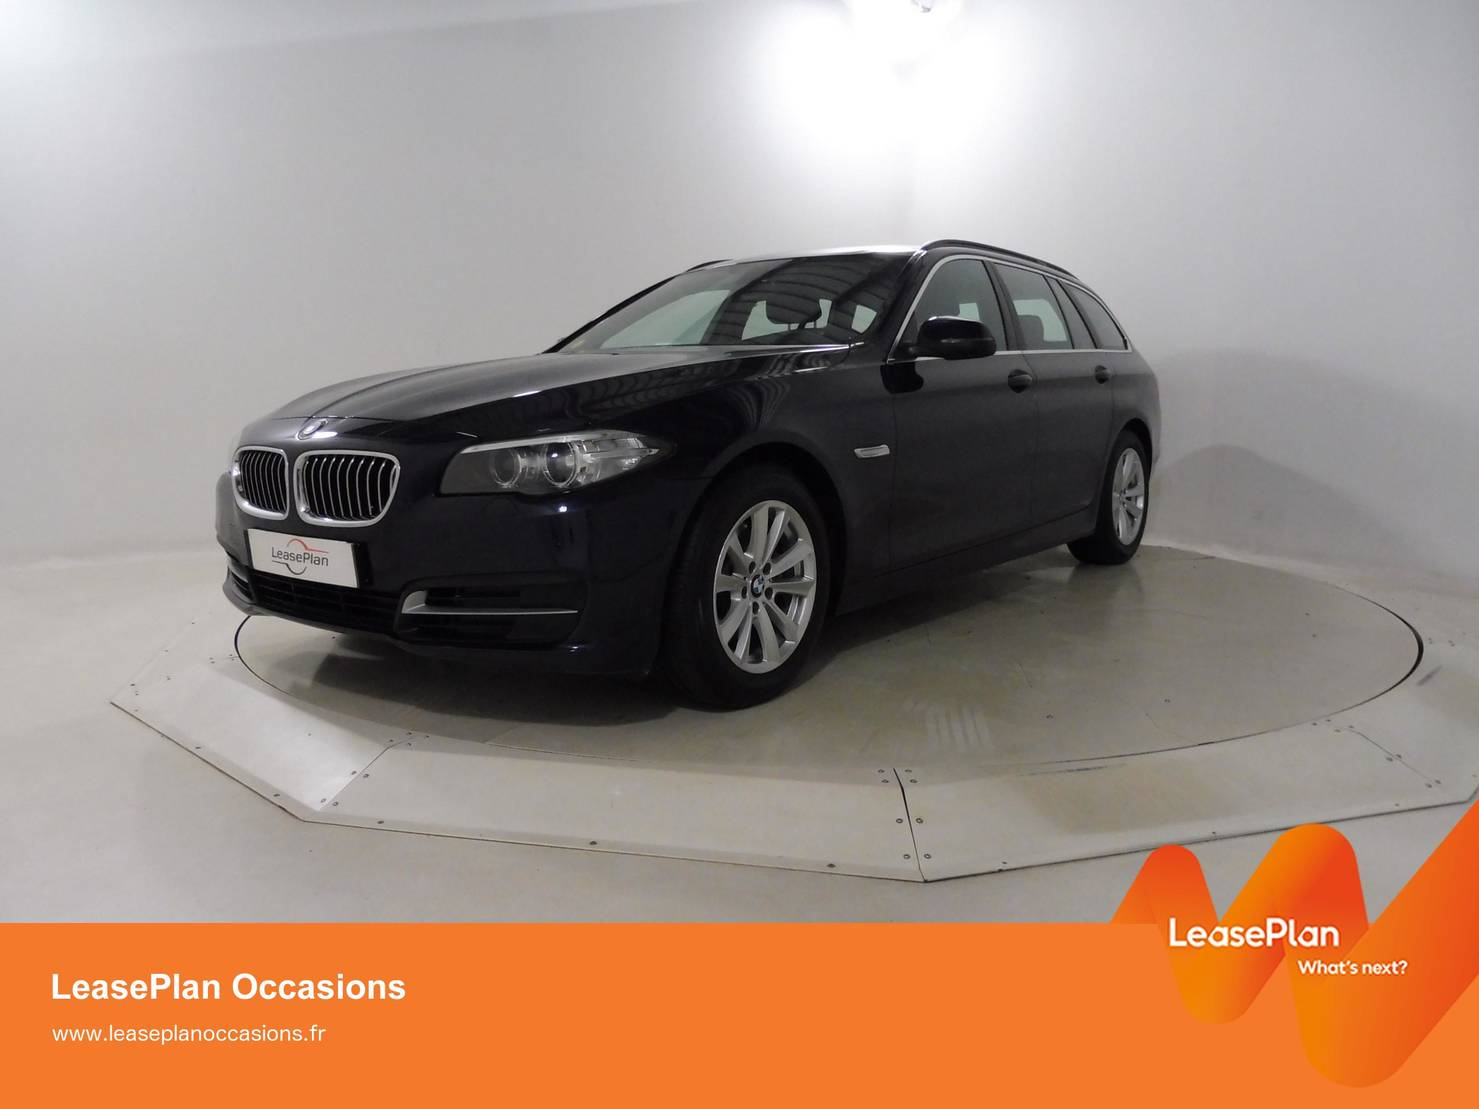 BMW 5 Serie Touring 520d 190 ch, Lounge Plus A detail1